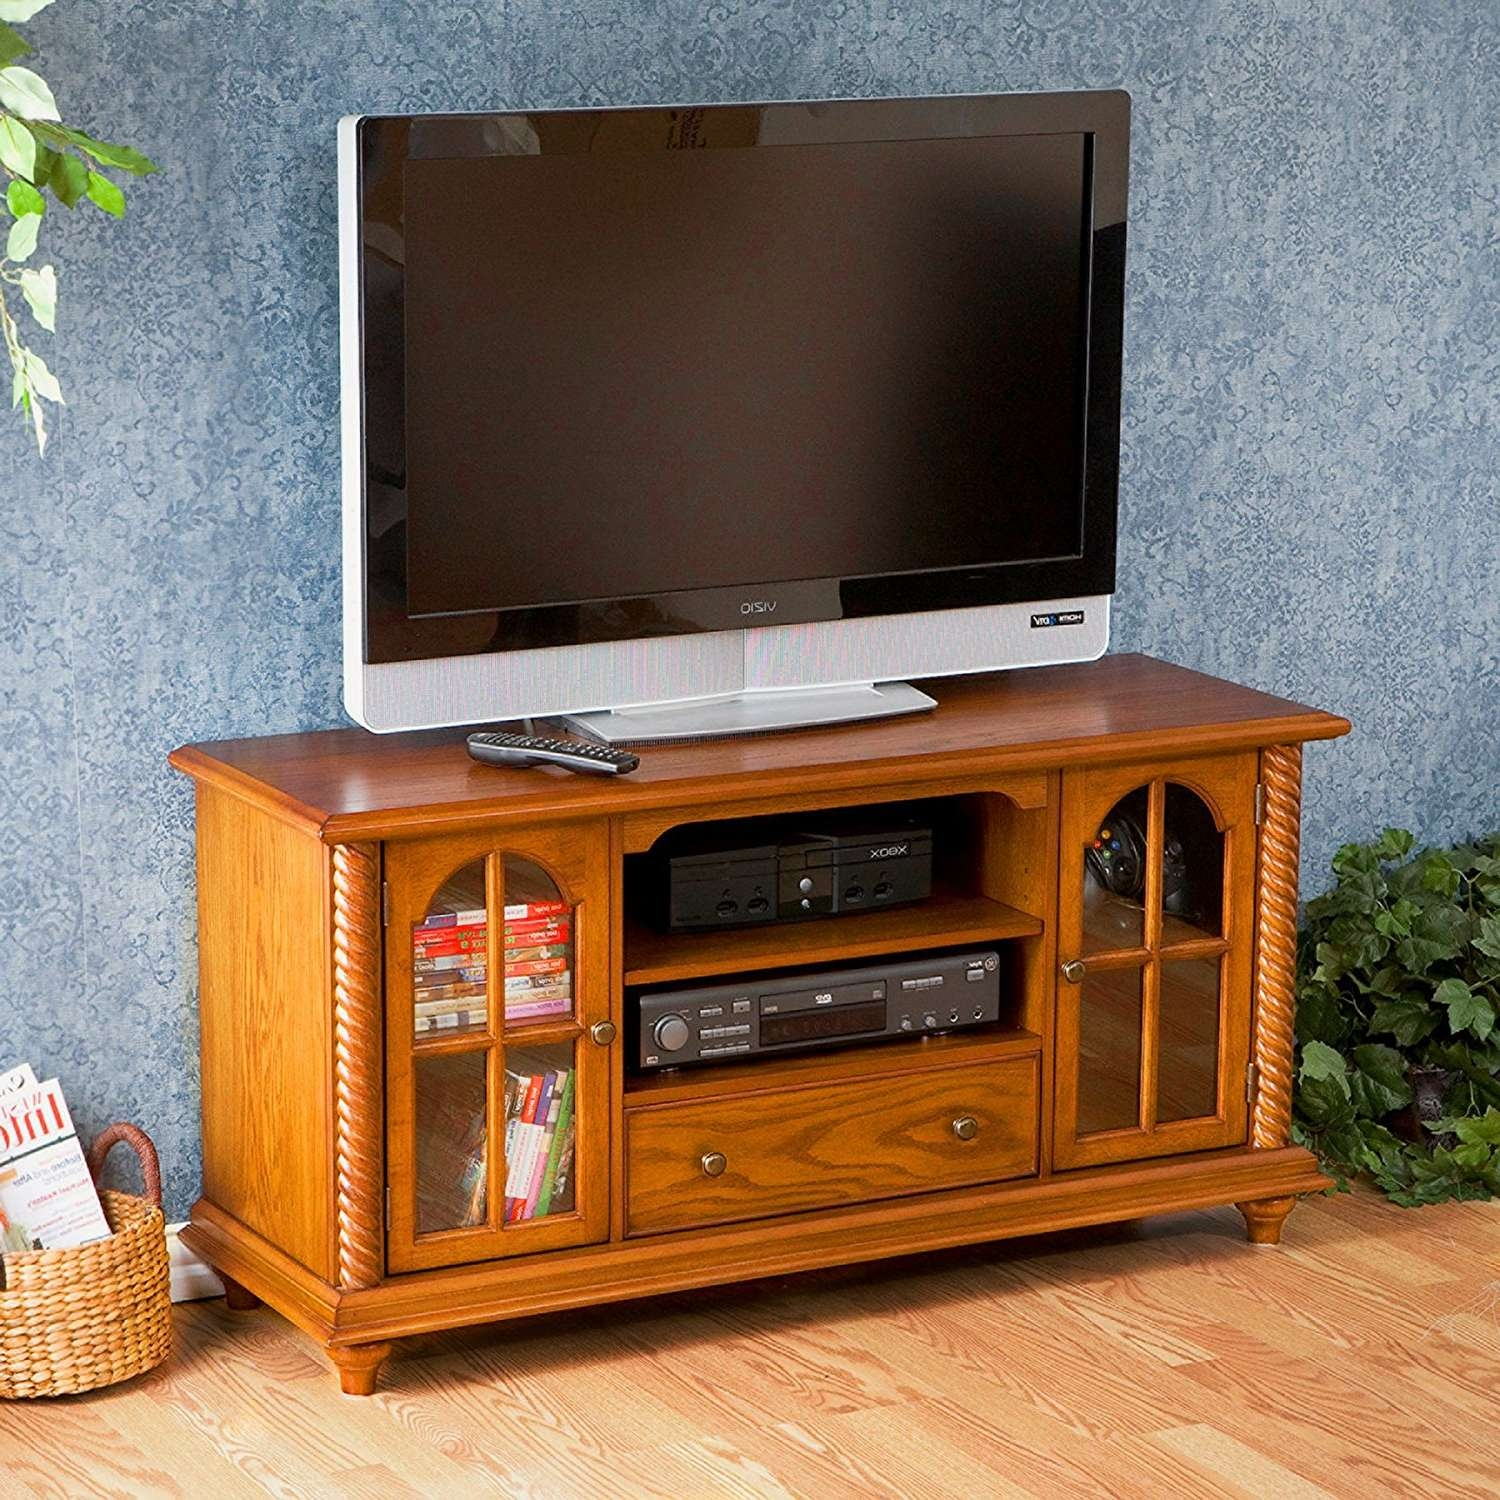 Innovative Designs Oak Tv Console | Marku Home Design Intended For Oak Tv Cabinets For Flat Screens (View 6 of 20)